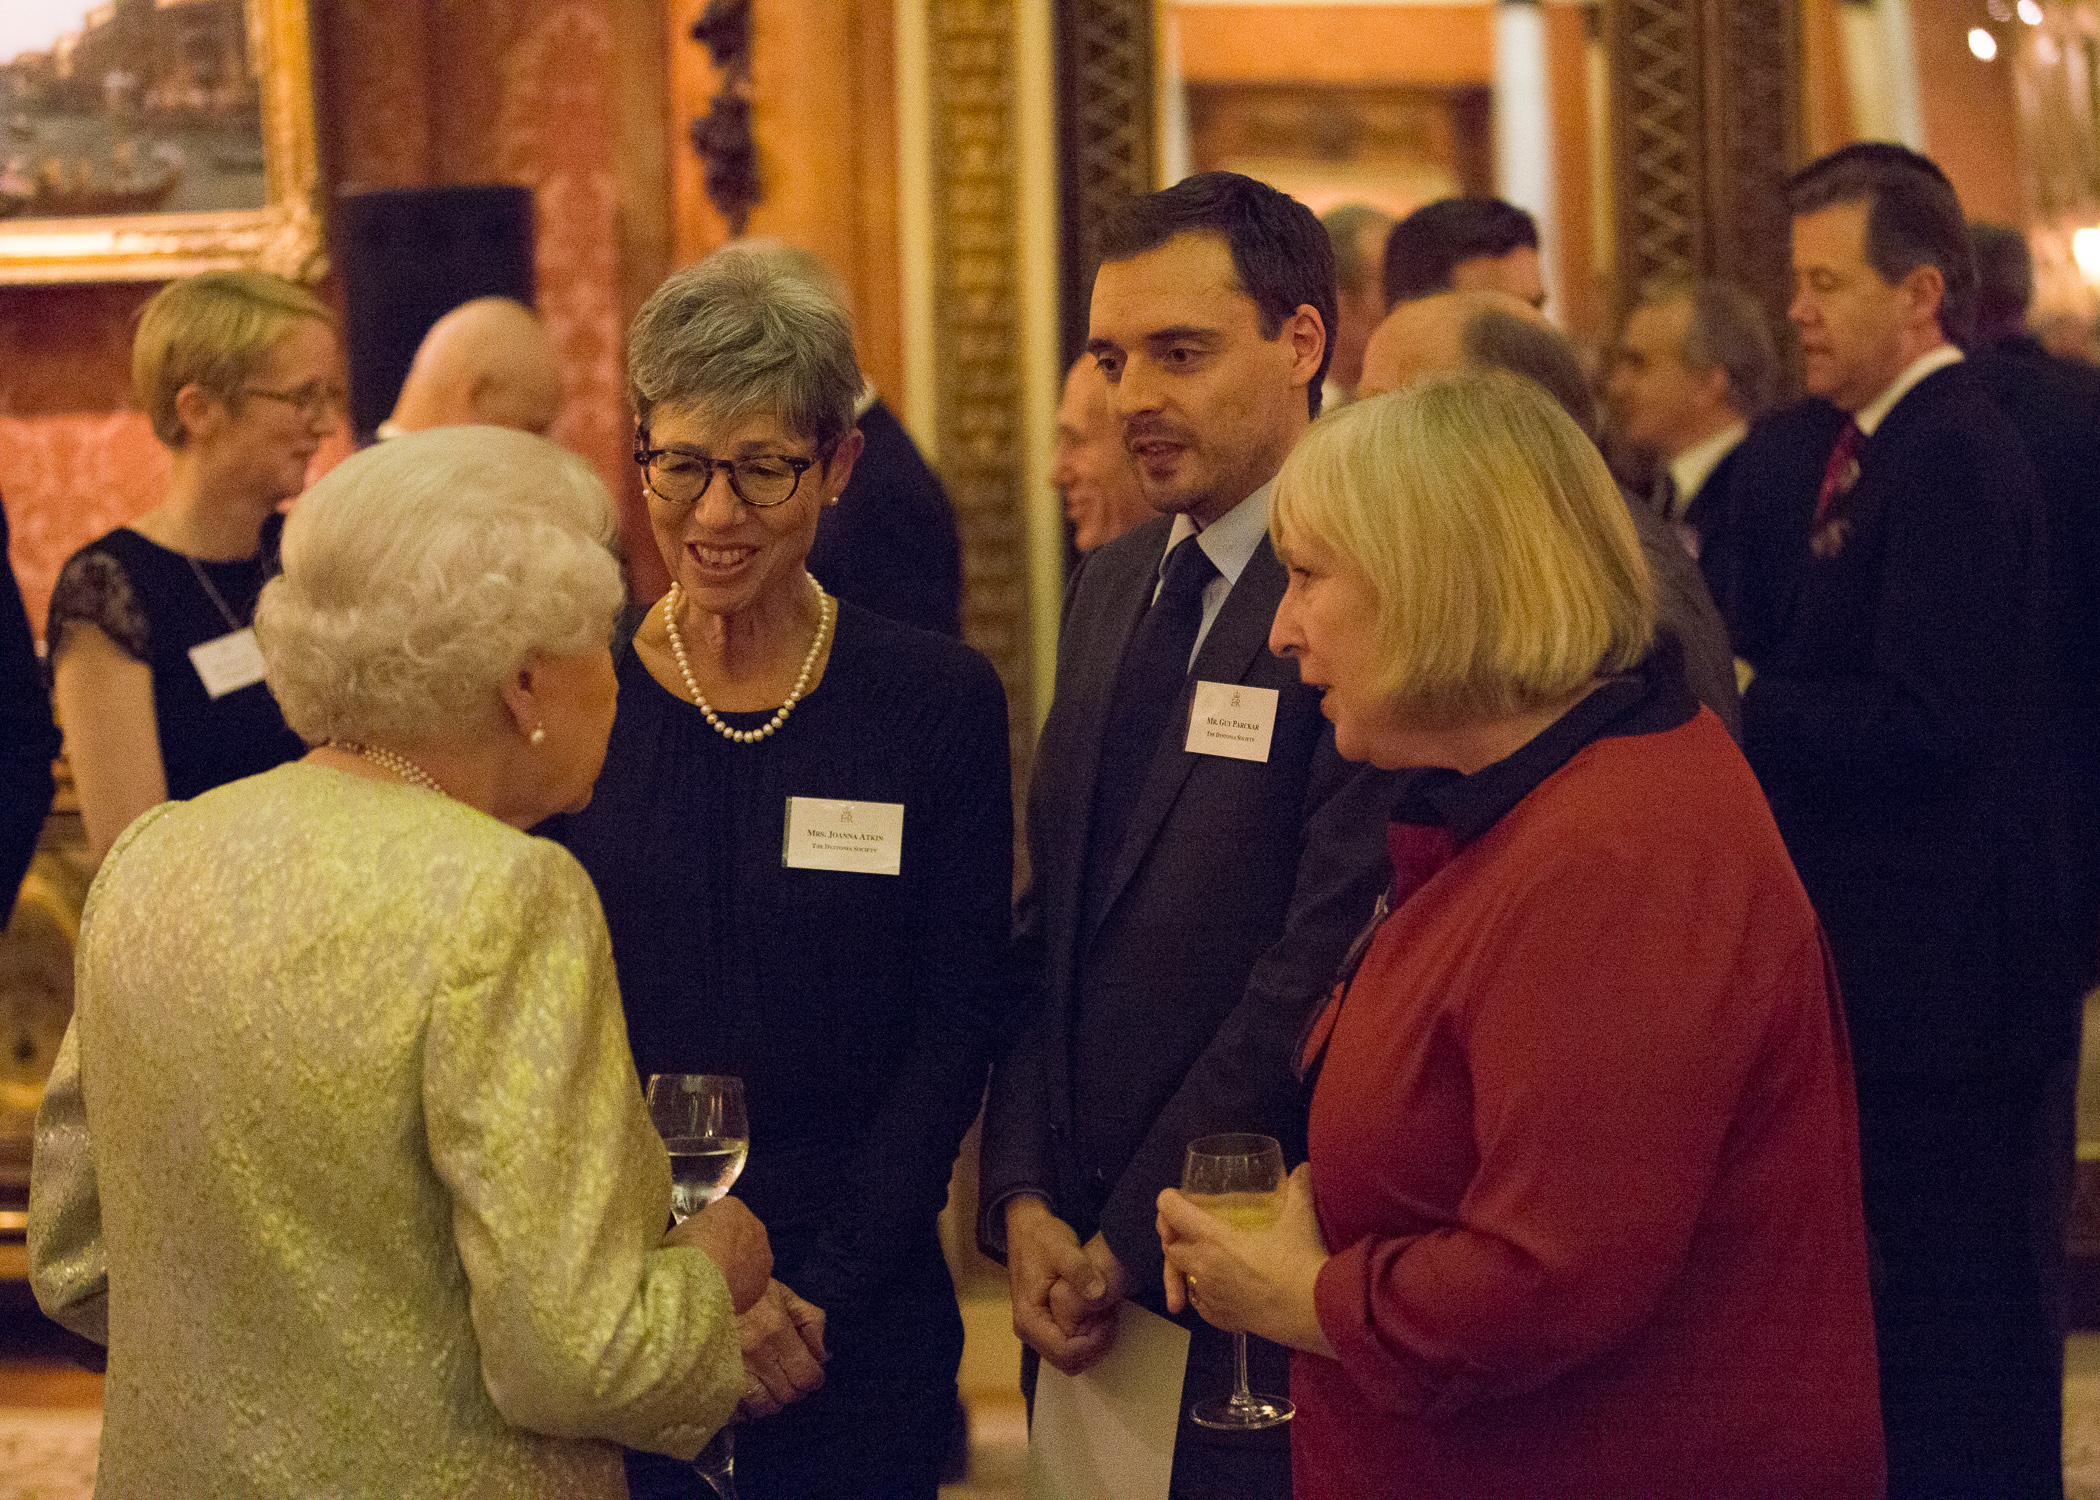 HM Queen Elizabeth II, Joanna Atkin, Guy Parckar and Gill Jepson in conversation.